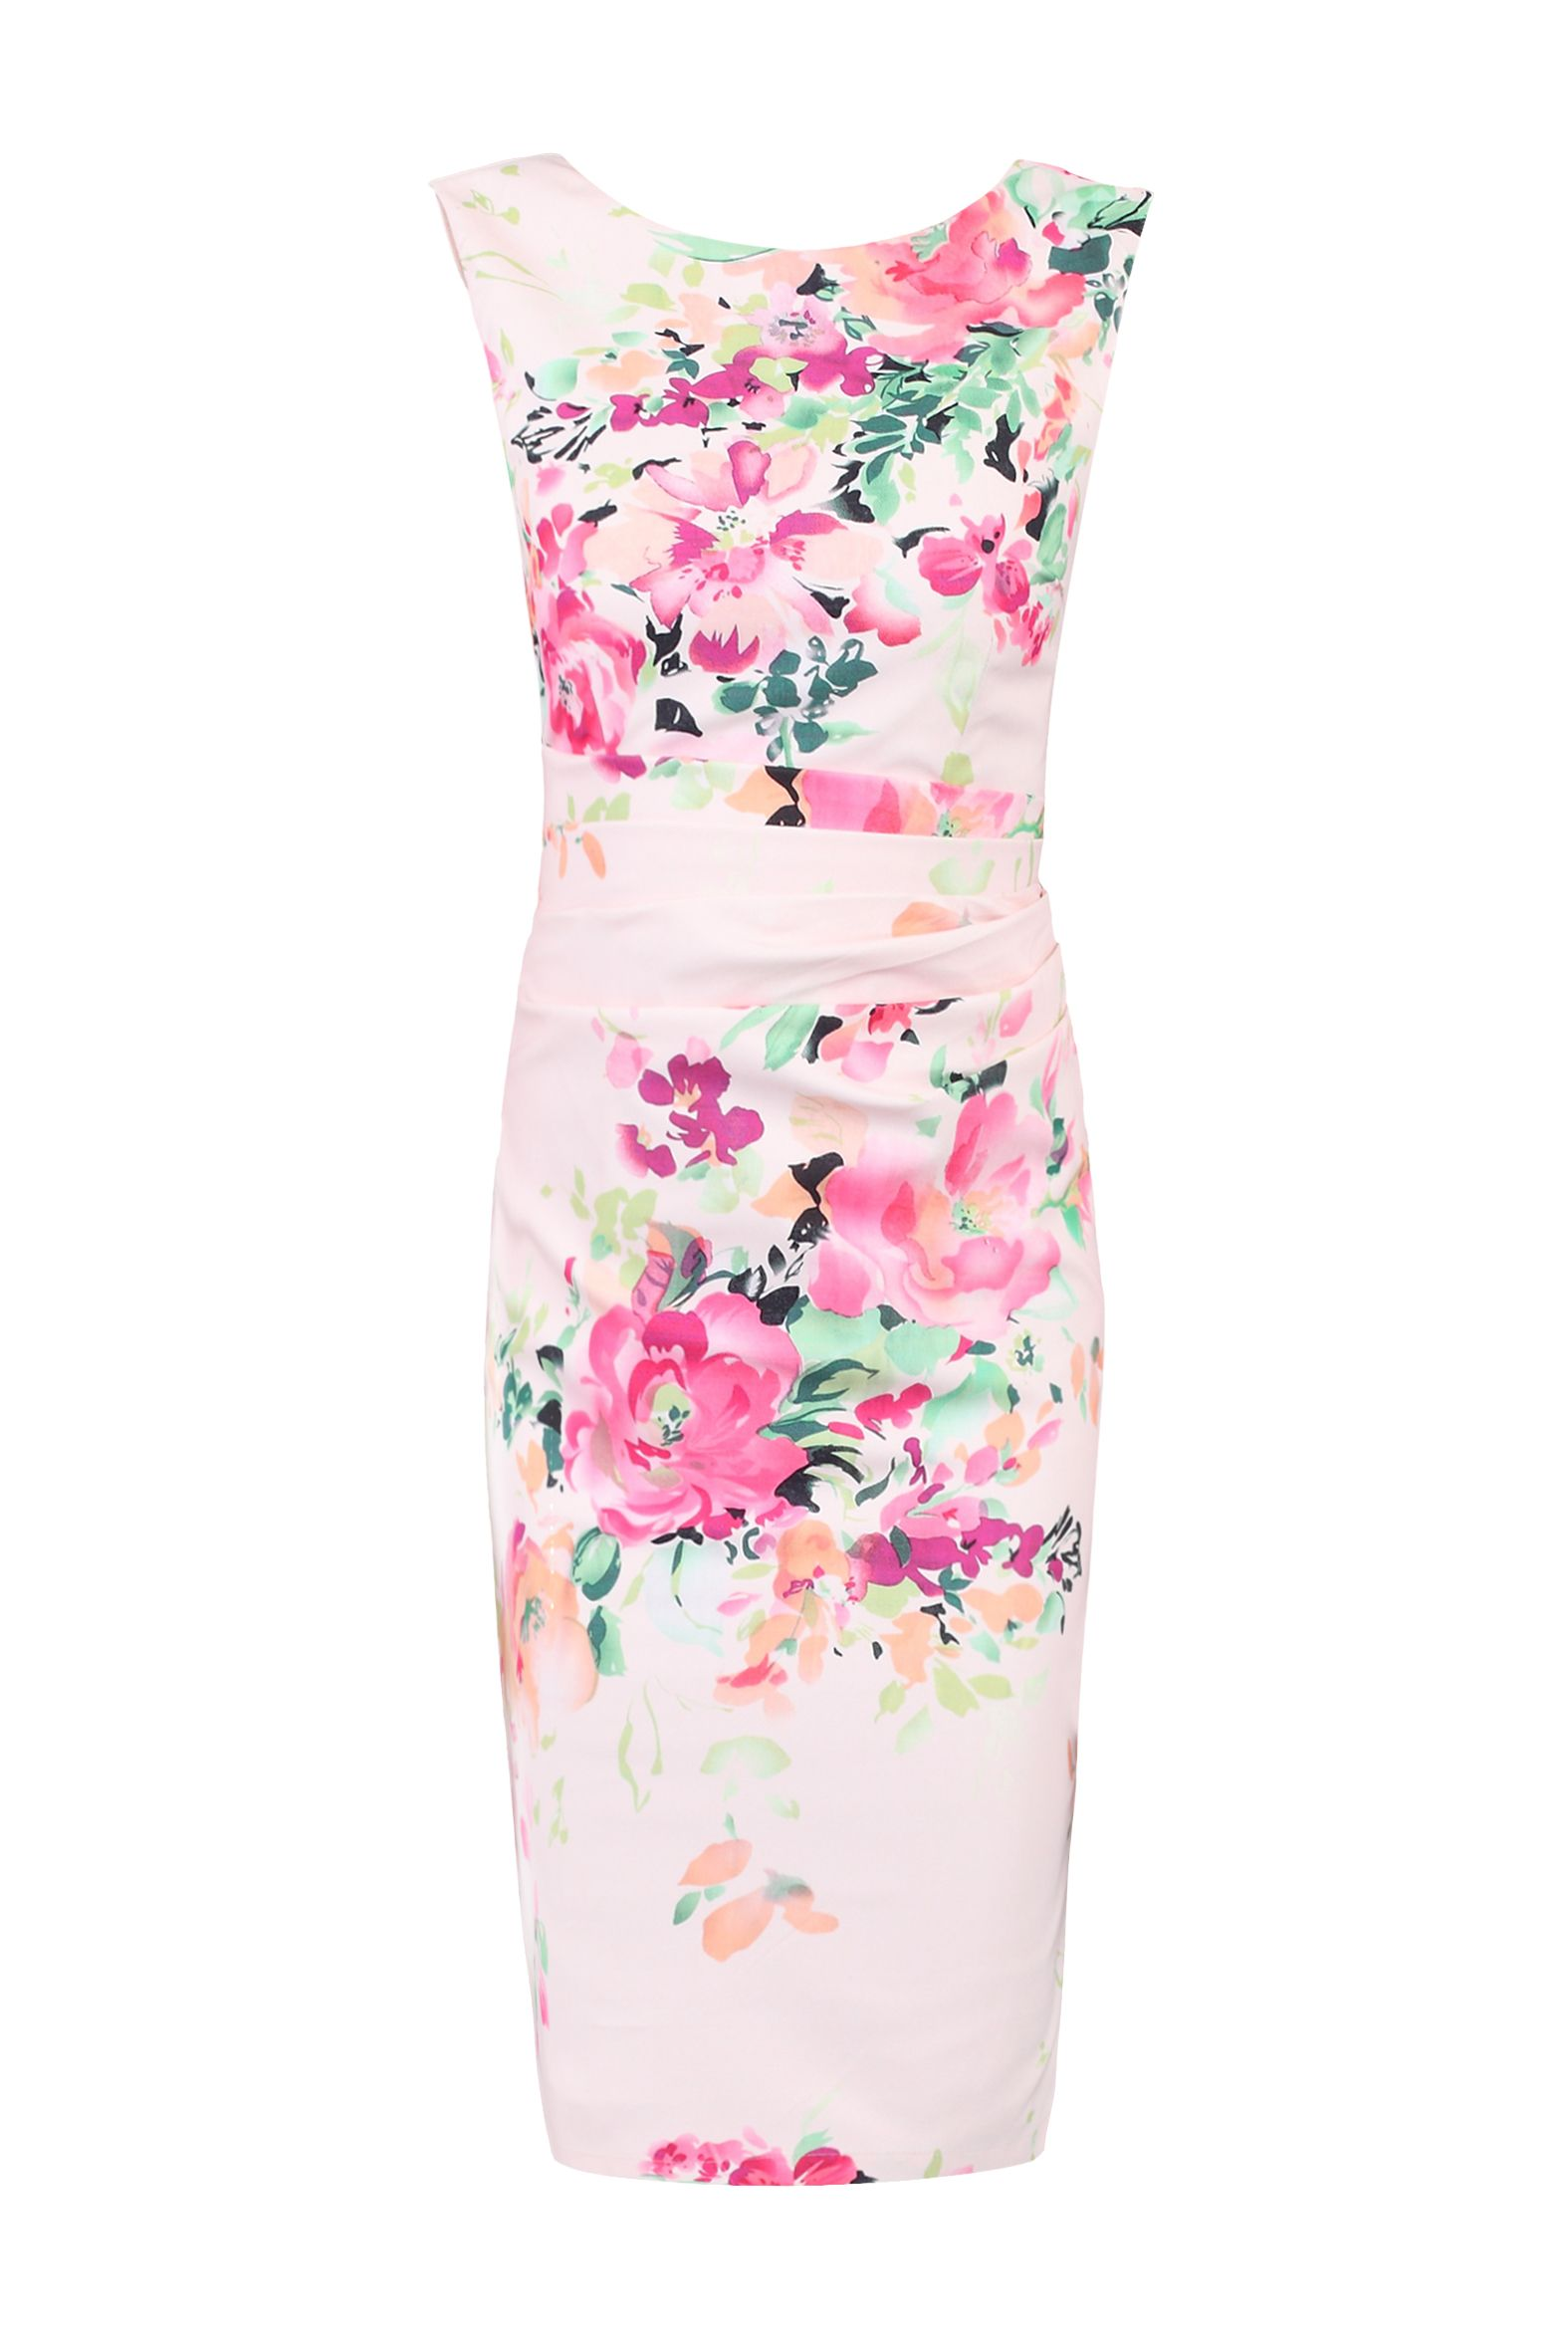 Jolie Moi Floral Print Ruched Shift Dress, Pink